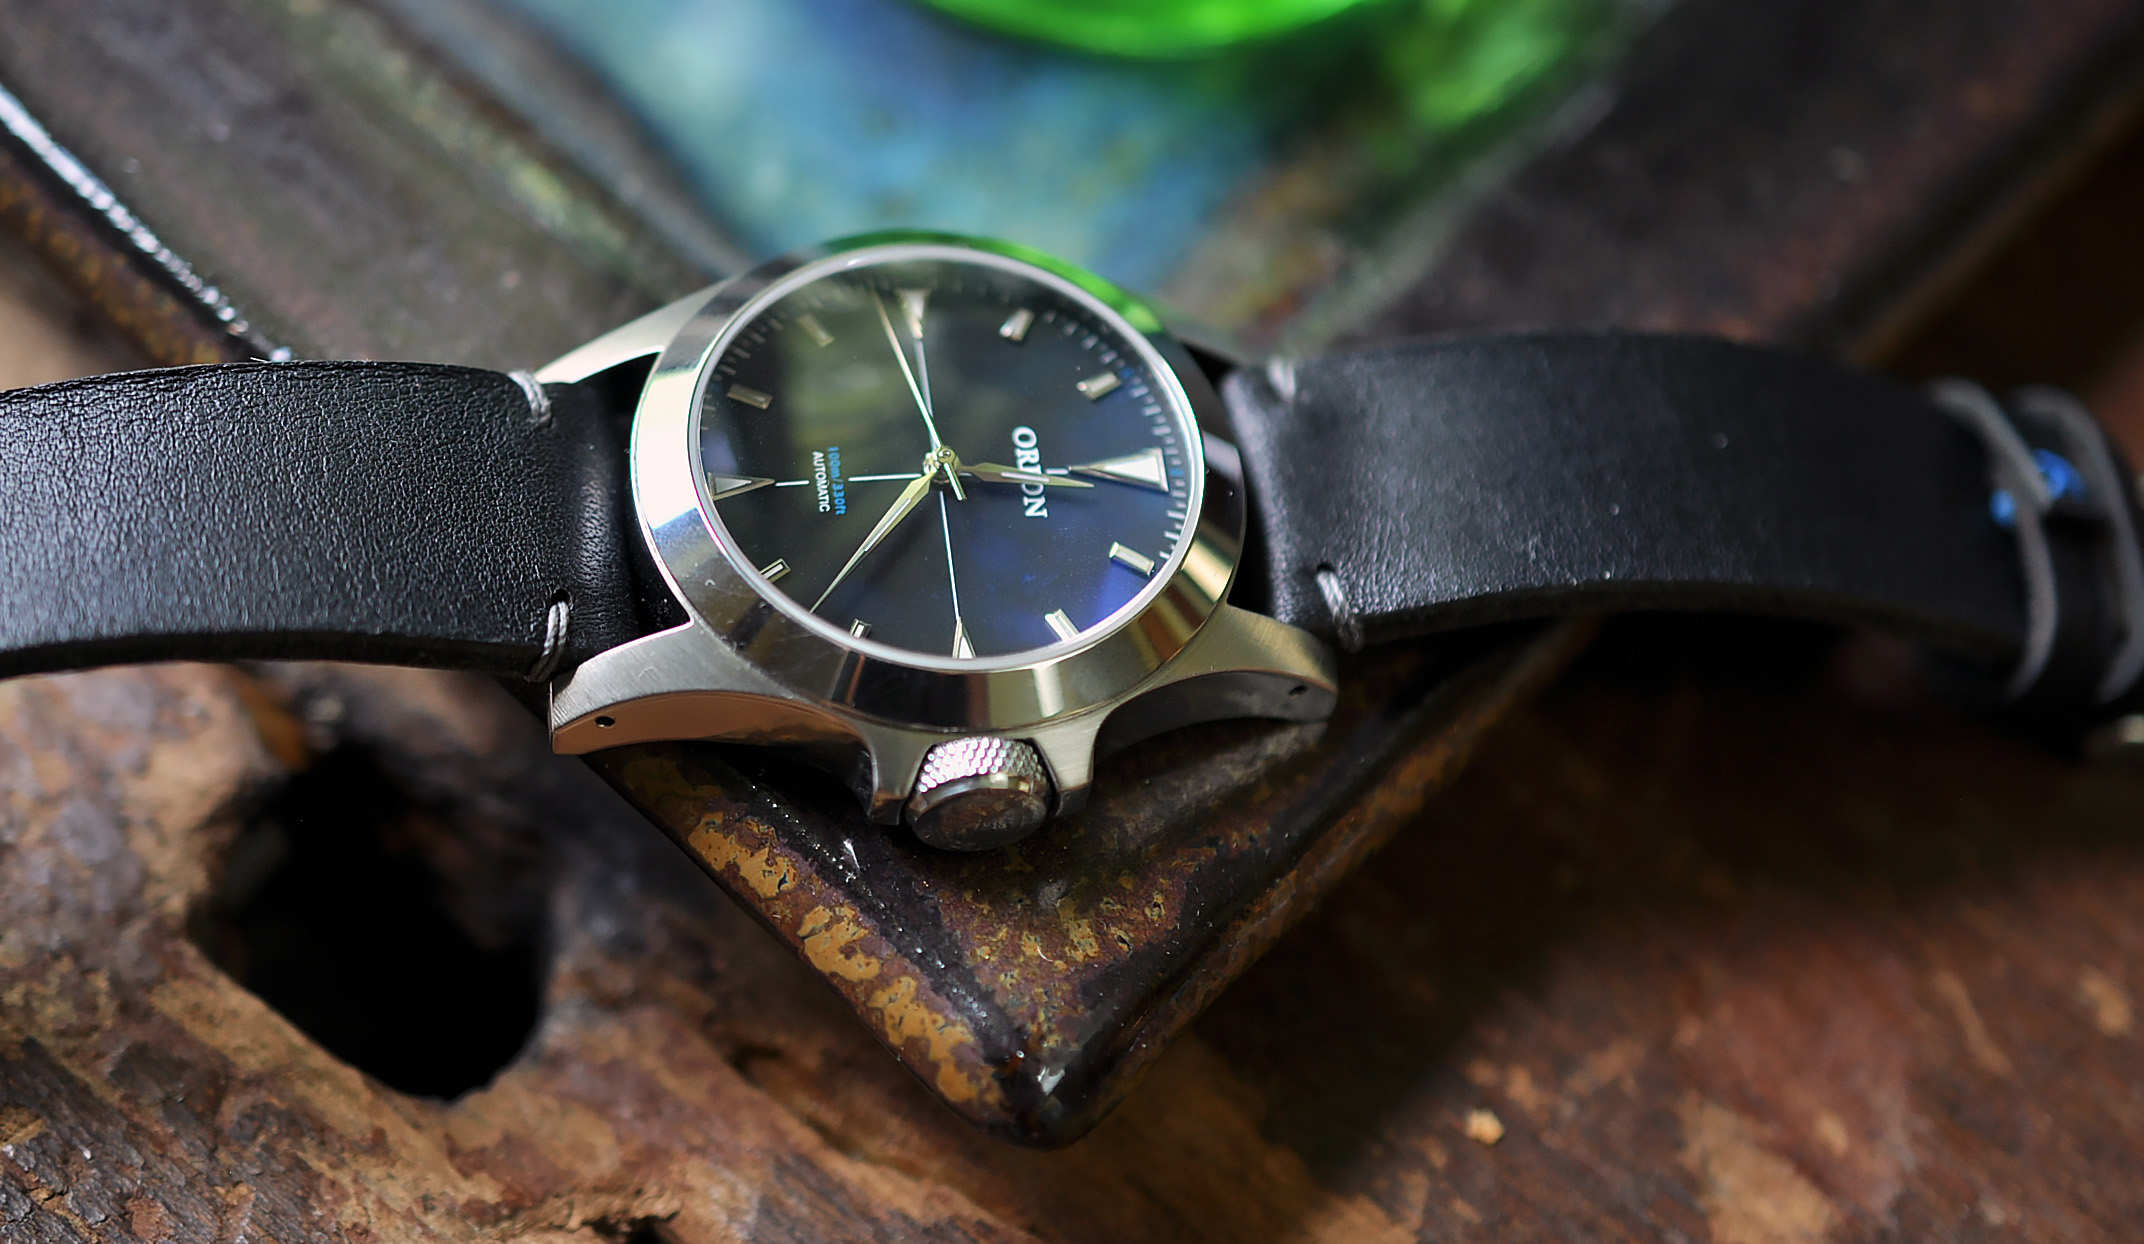 The Orion 1 with a custom strap from Fabnik